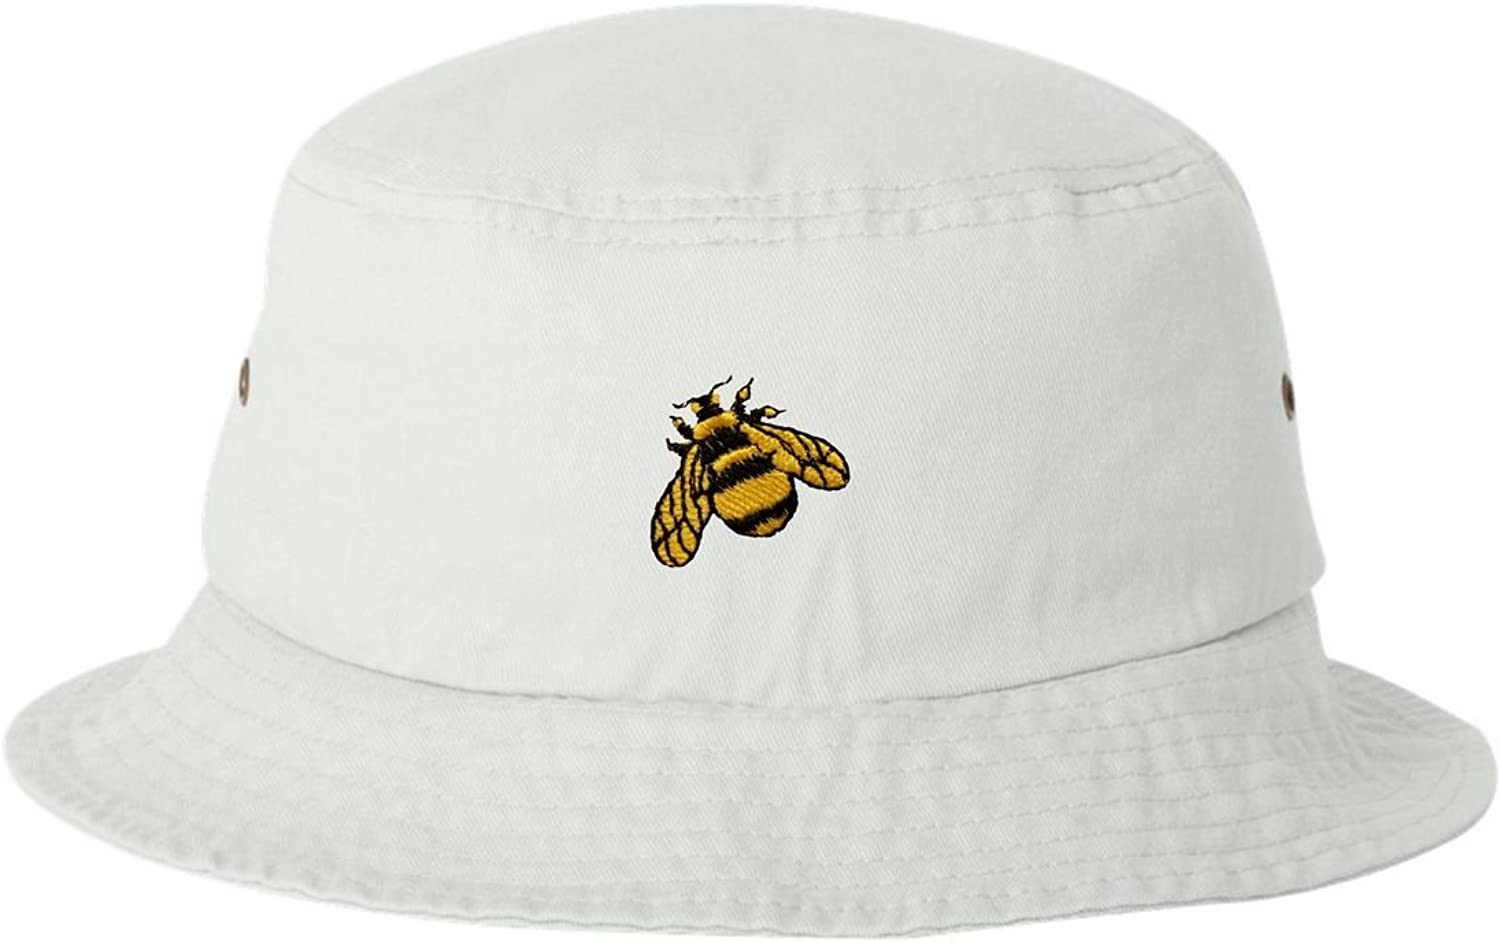 Go All Out Adult Bumble Bee Embroidered Bucket Cap Dad Hat